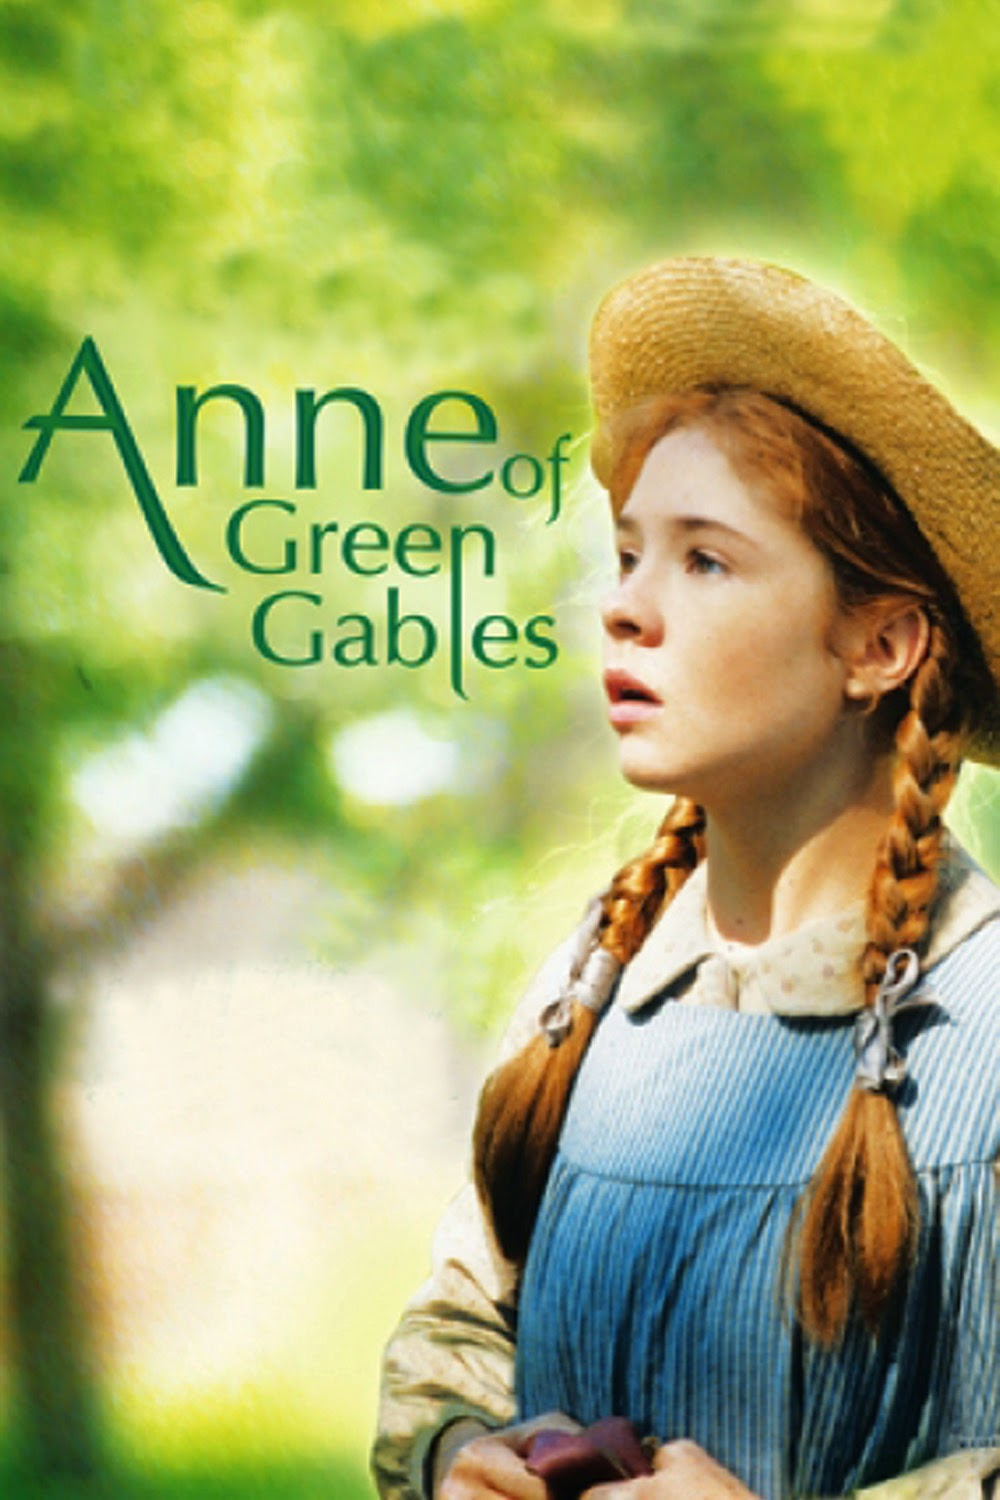 Imagem Anne of Green Gables - Legendado